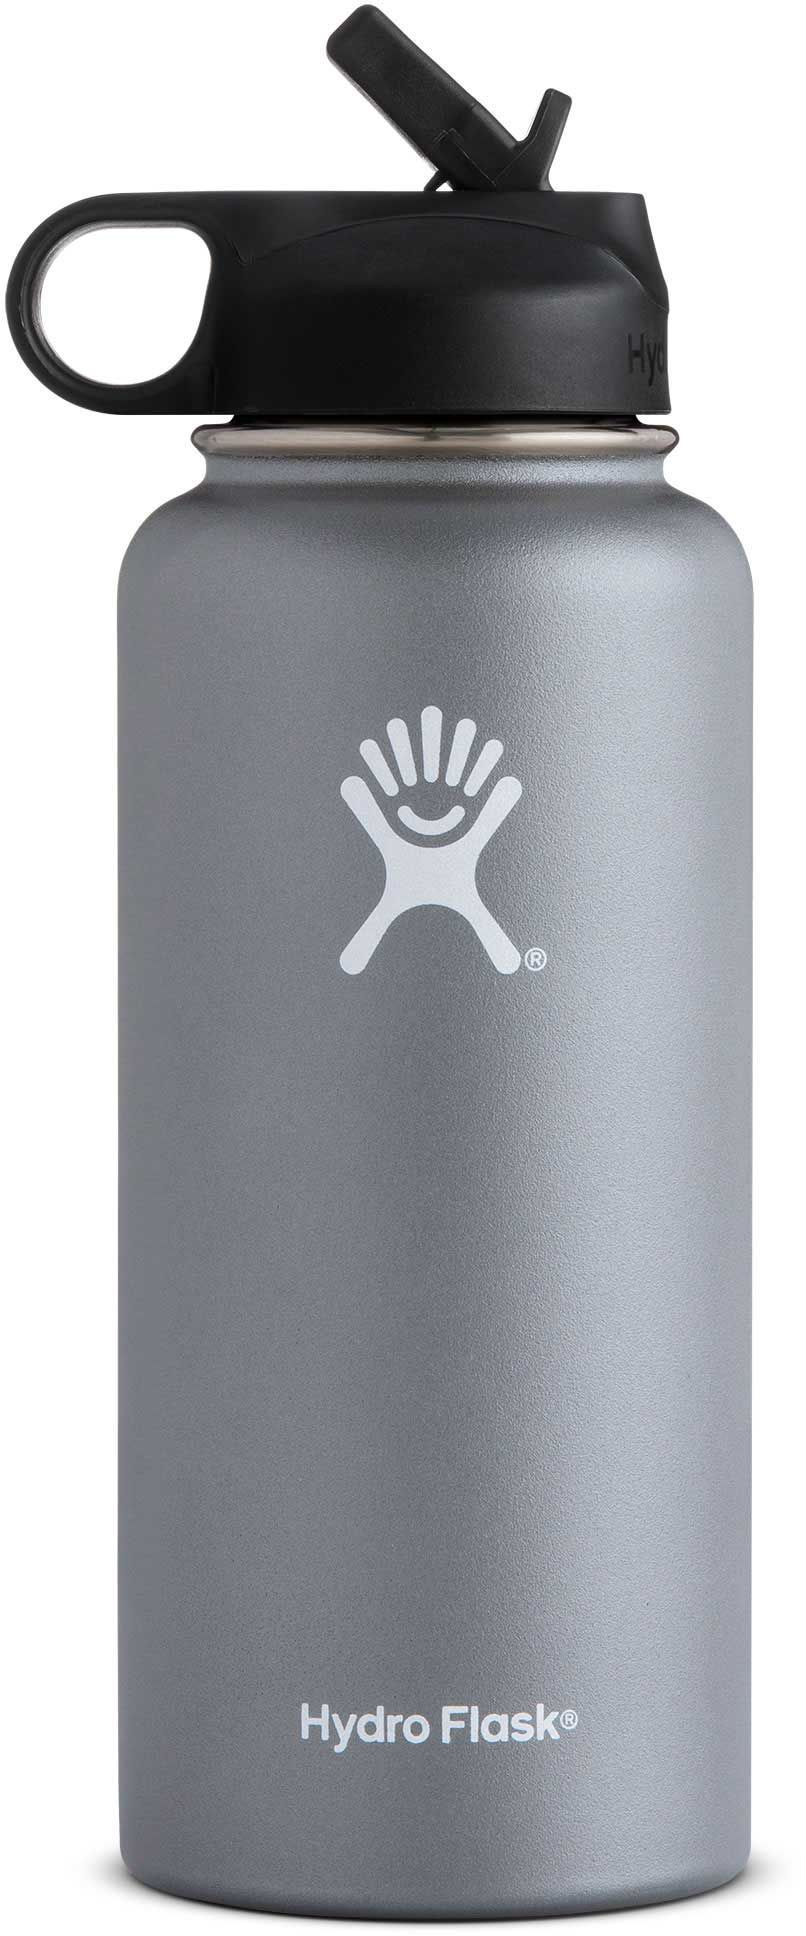 1a39639eb1 Hydro Flask Wide Mouth 32 oz. Bottle with Straw Lid   Products ...